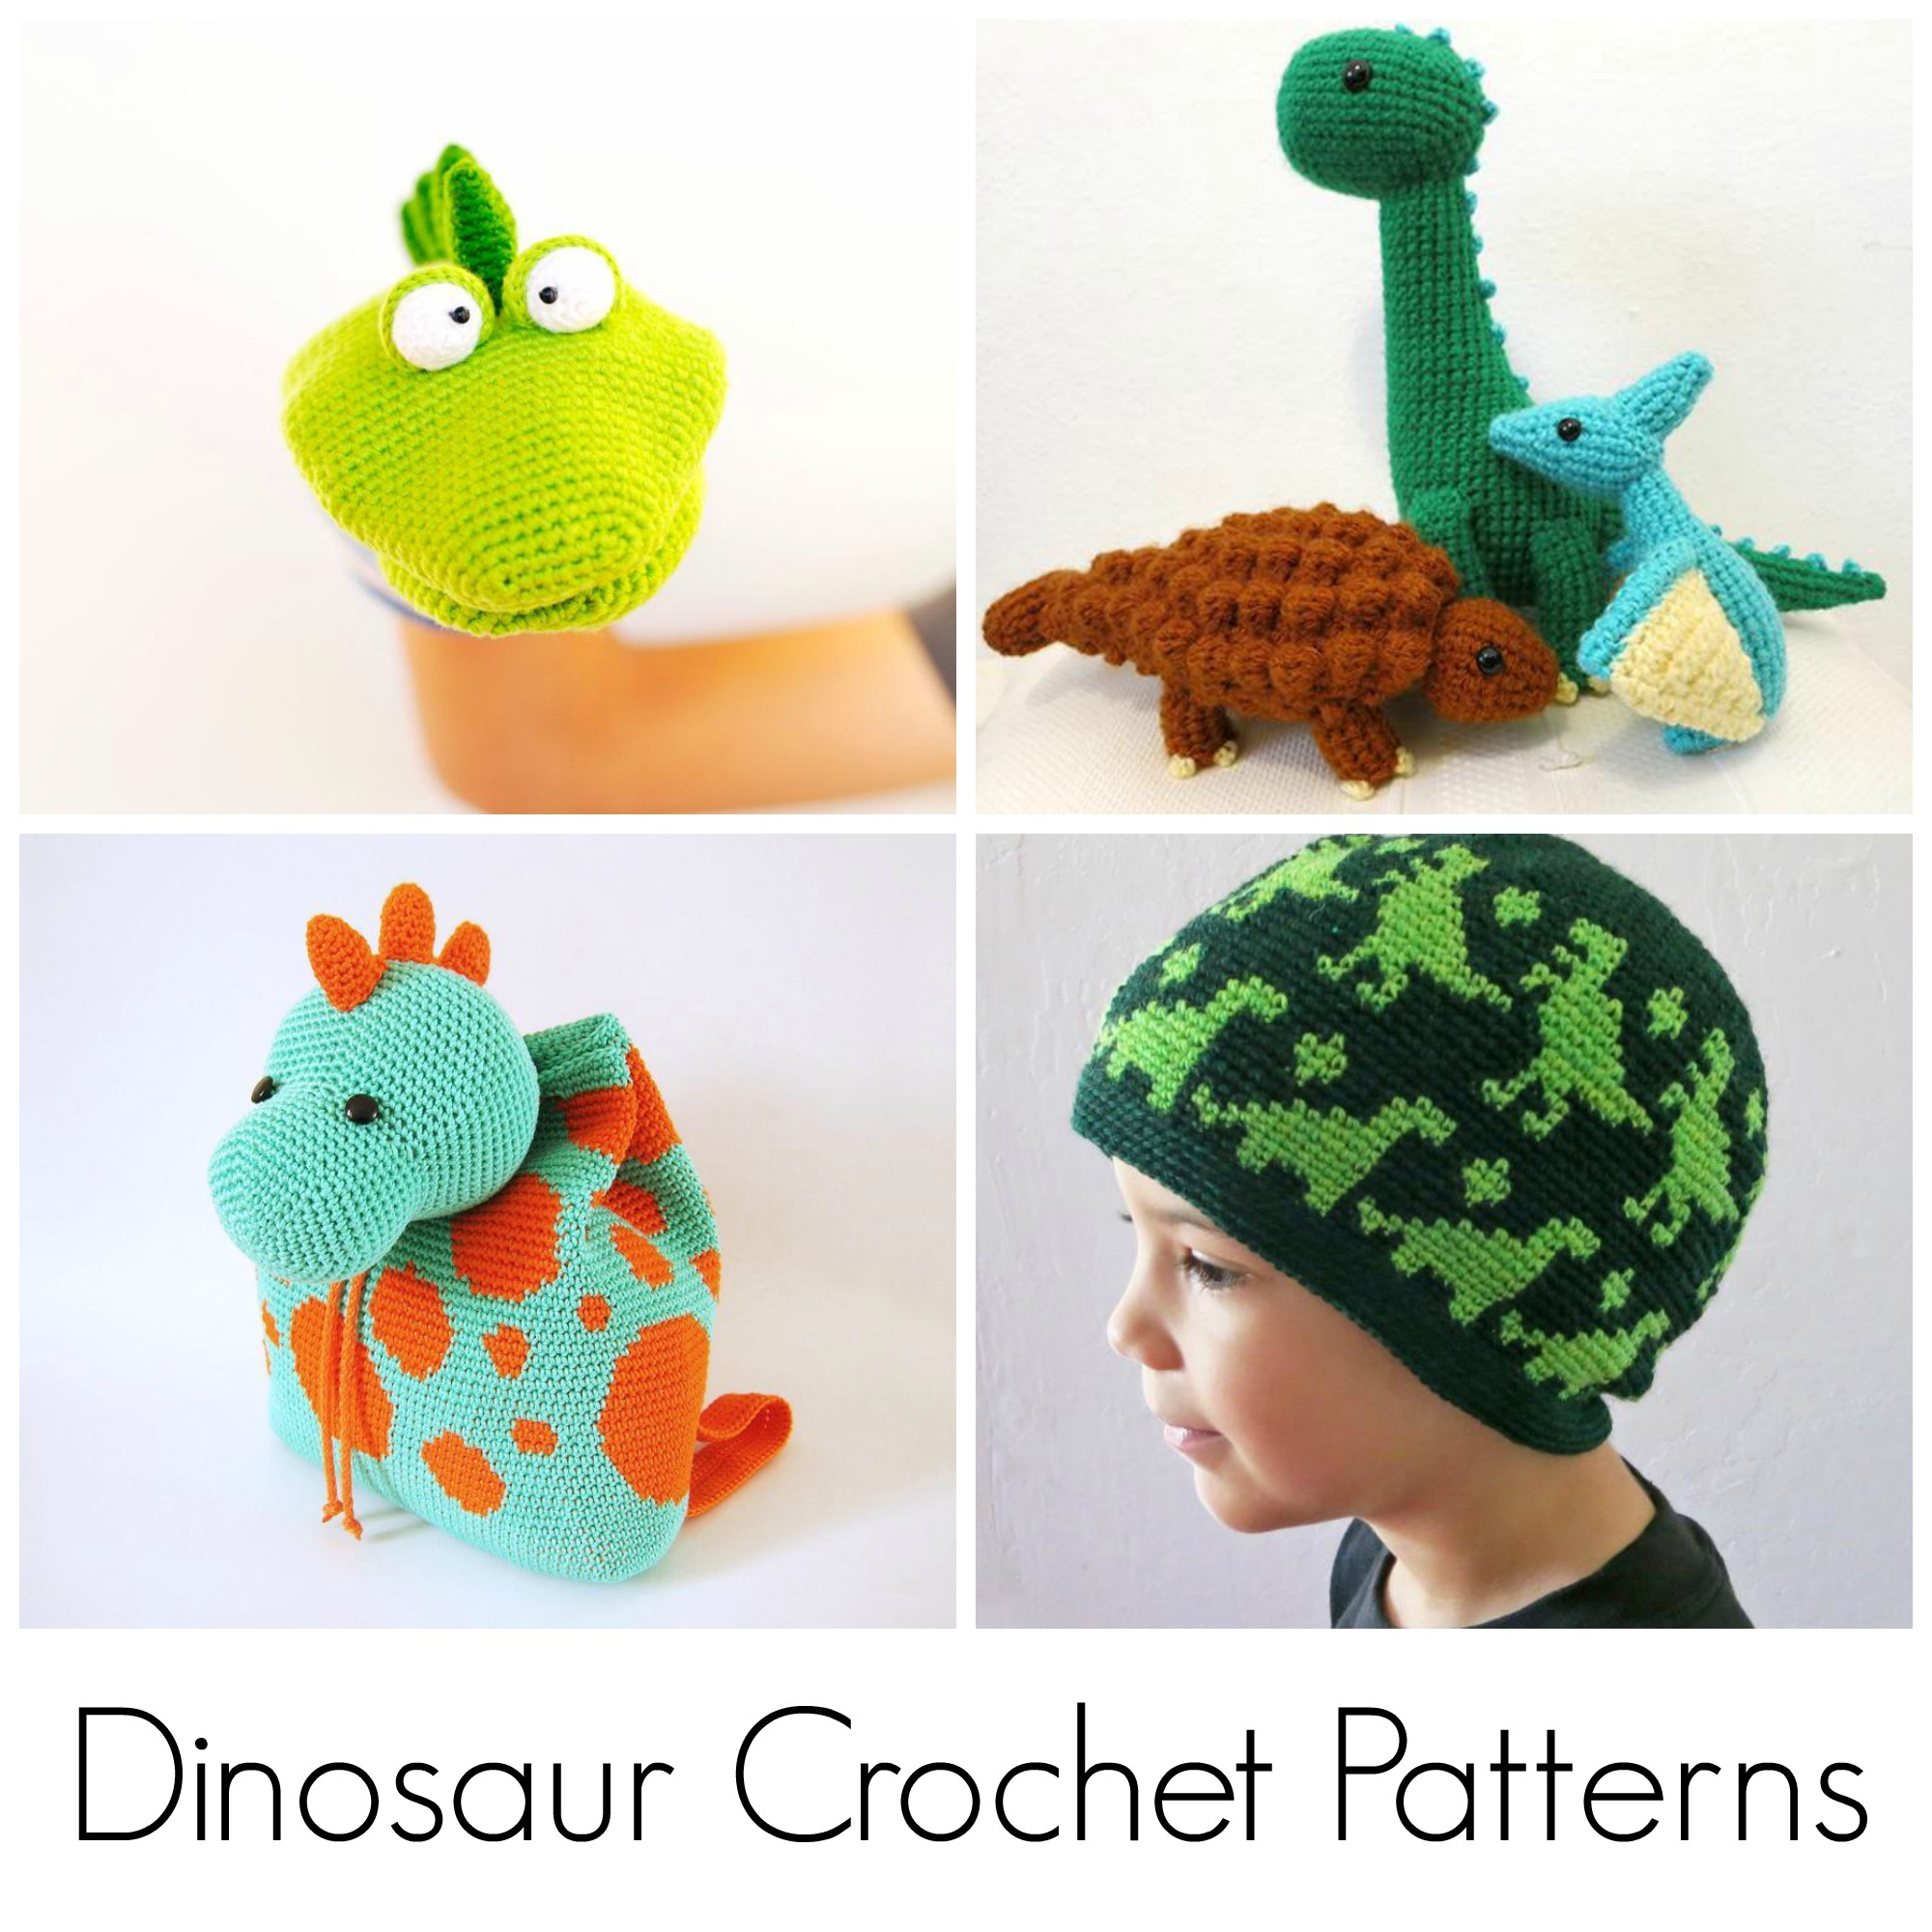 Dinosaur Crochet Patterns